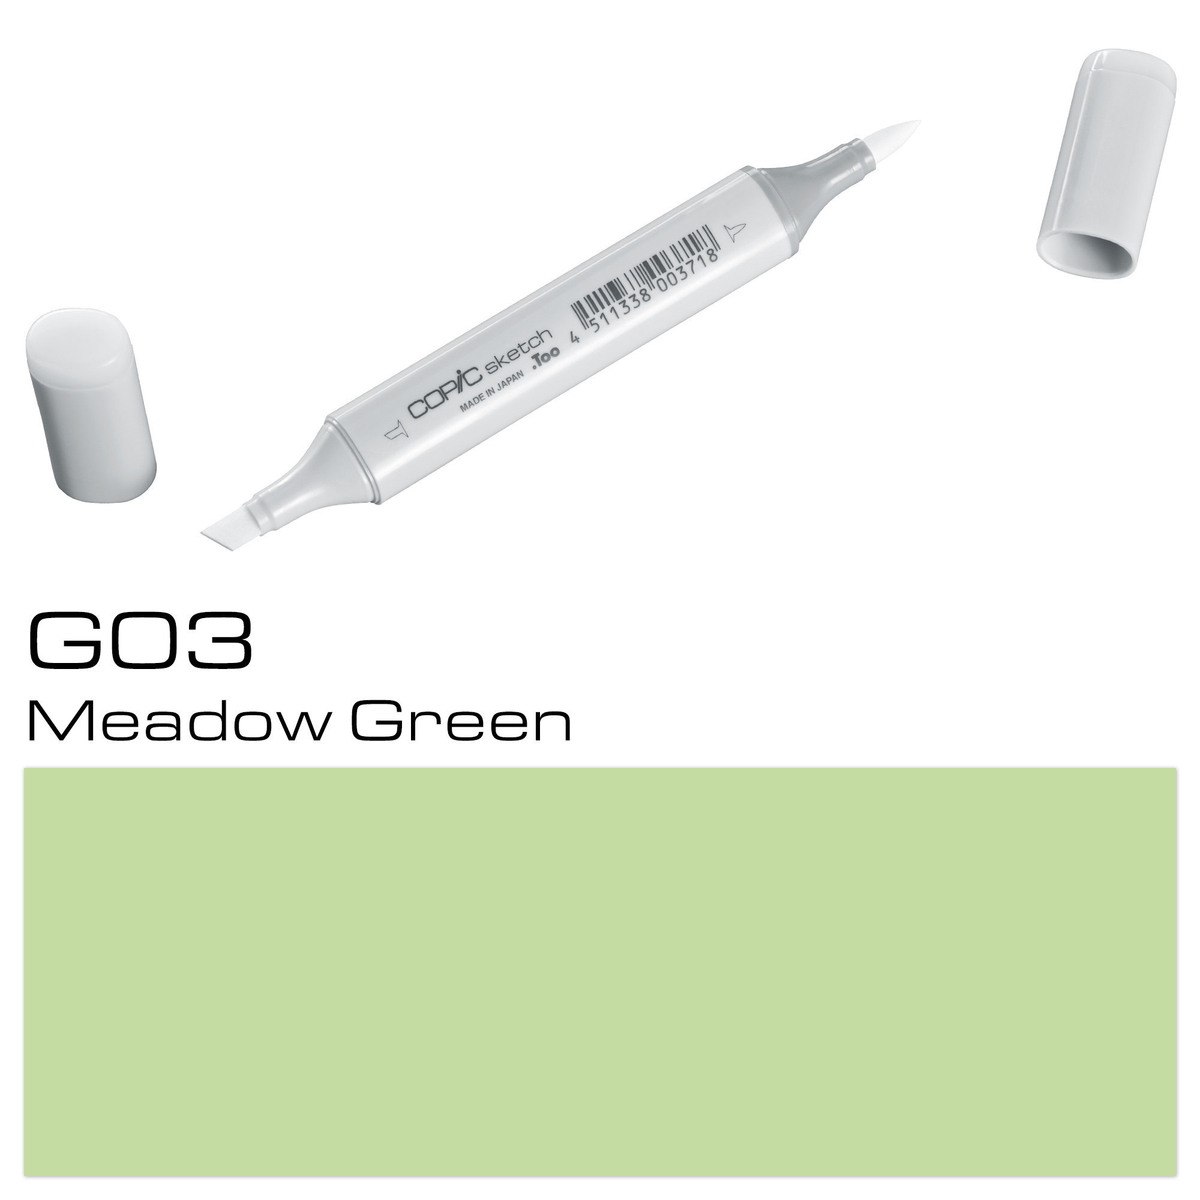 Copic Sketch G 03 meadow green